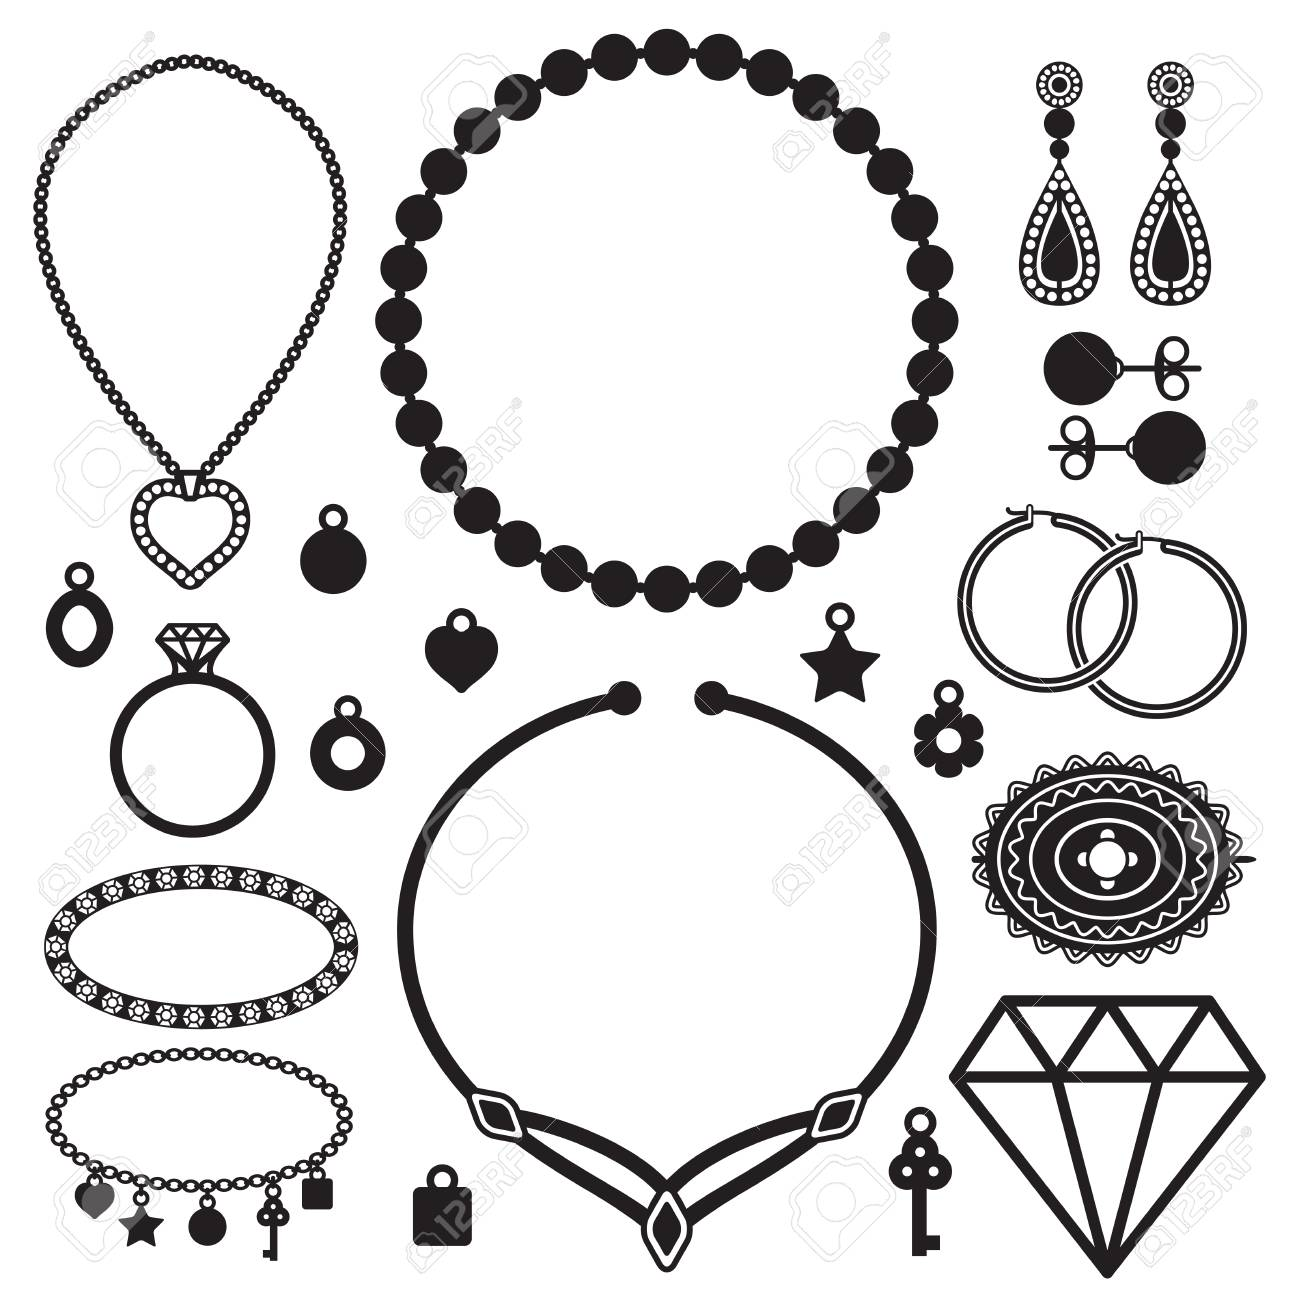 Jewelry silhouette icons vector set.